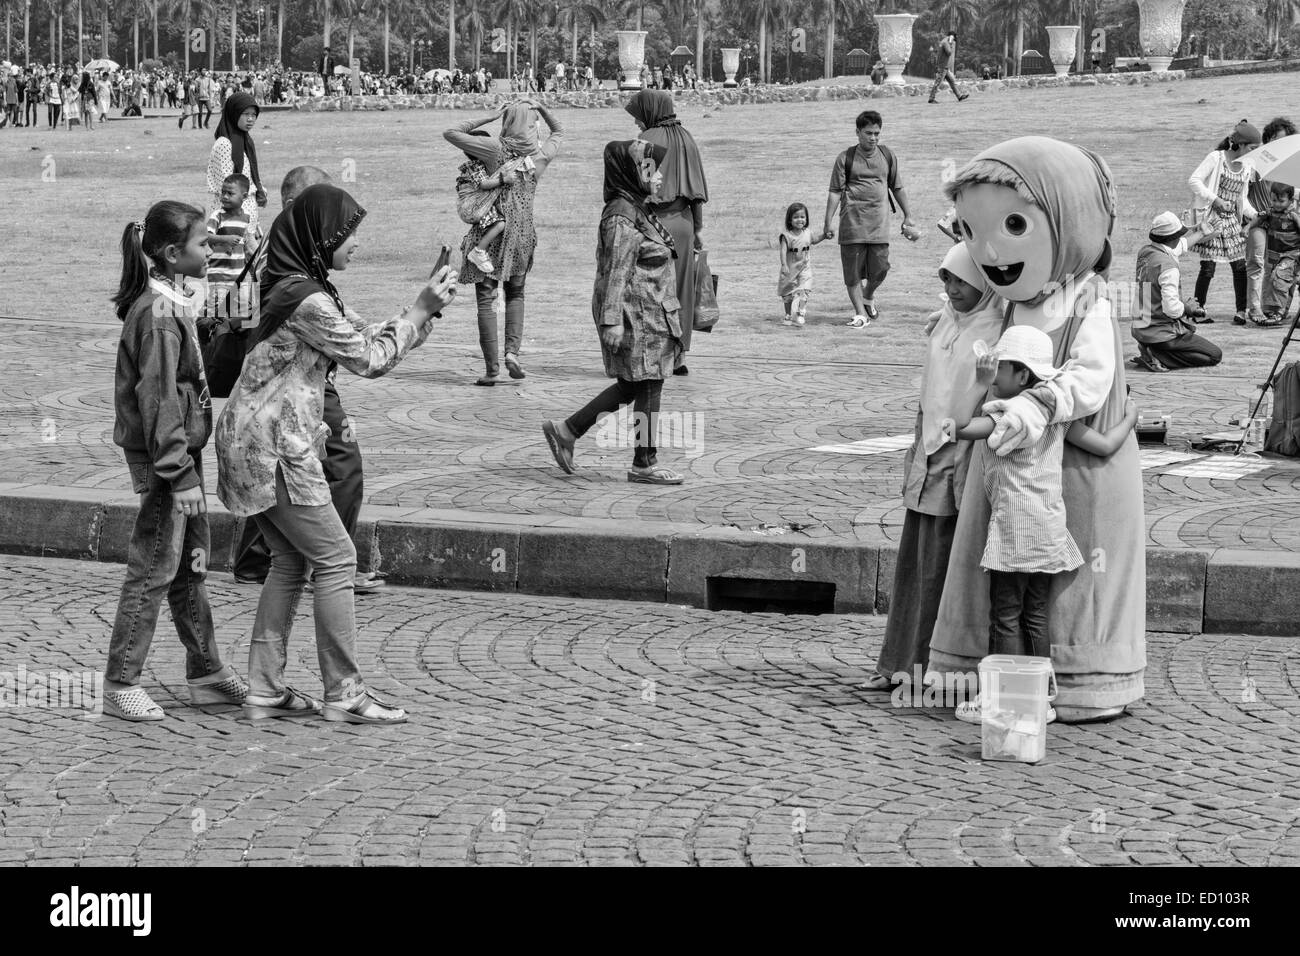 Jakarta Juli 31, 2014. People are visiting Monas during the Idul Fitri (Eid al-Fitr) Holidays. Black and White. - Stock Image